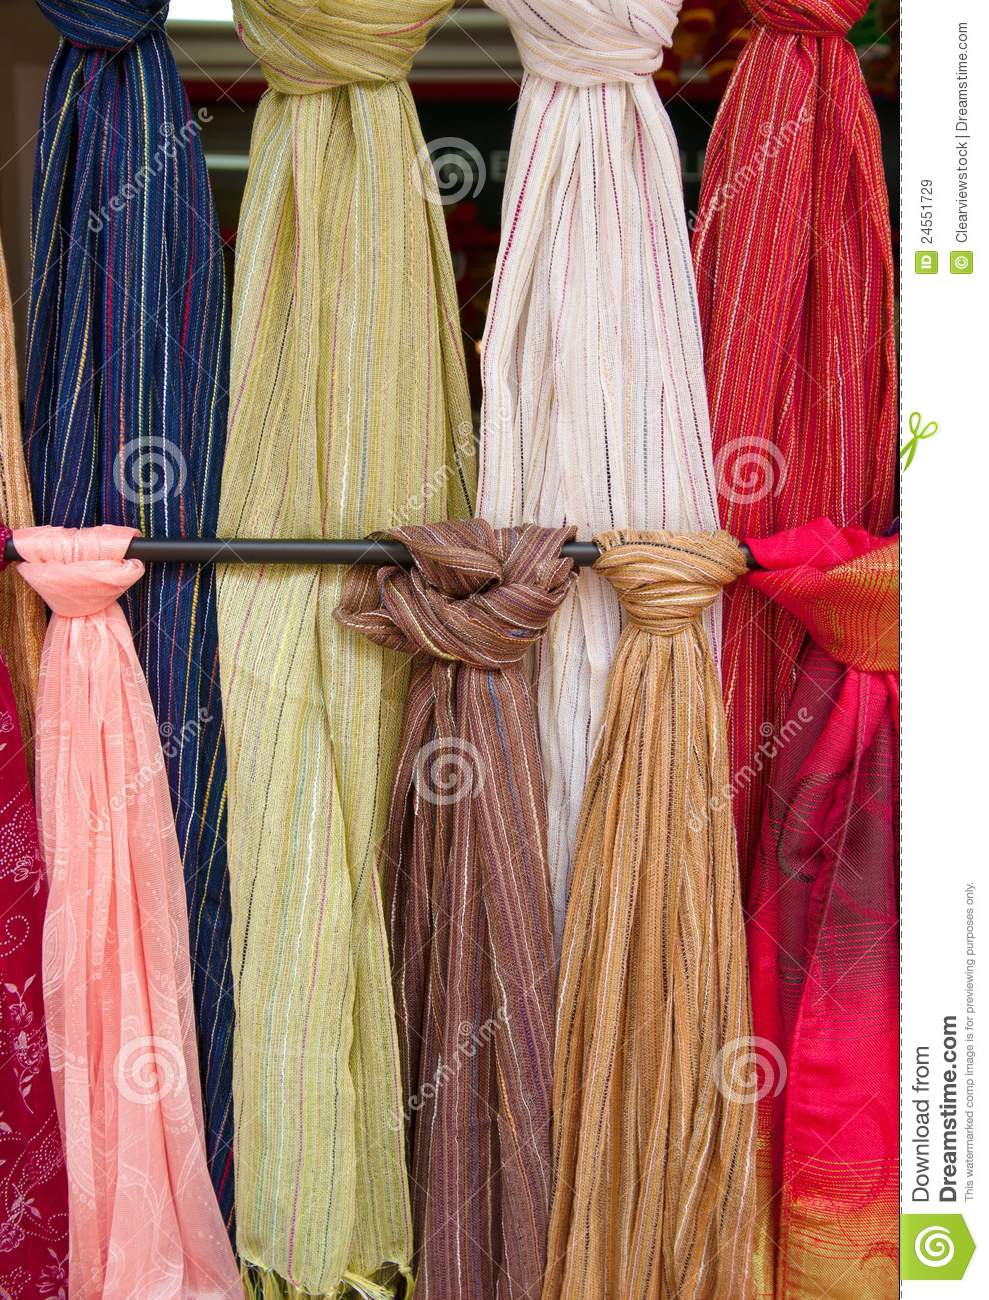 Fabric for sale royalty free stock images image 24551729 for Cloth material for sale